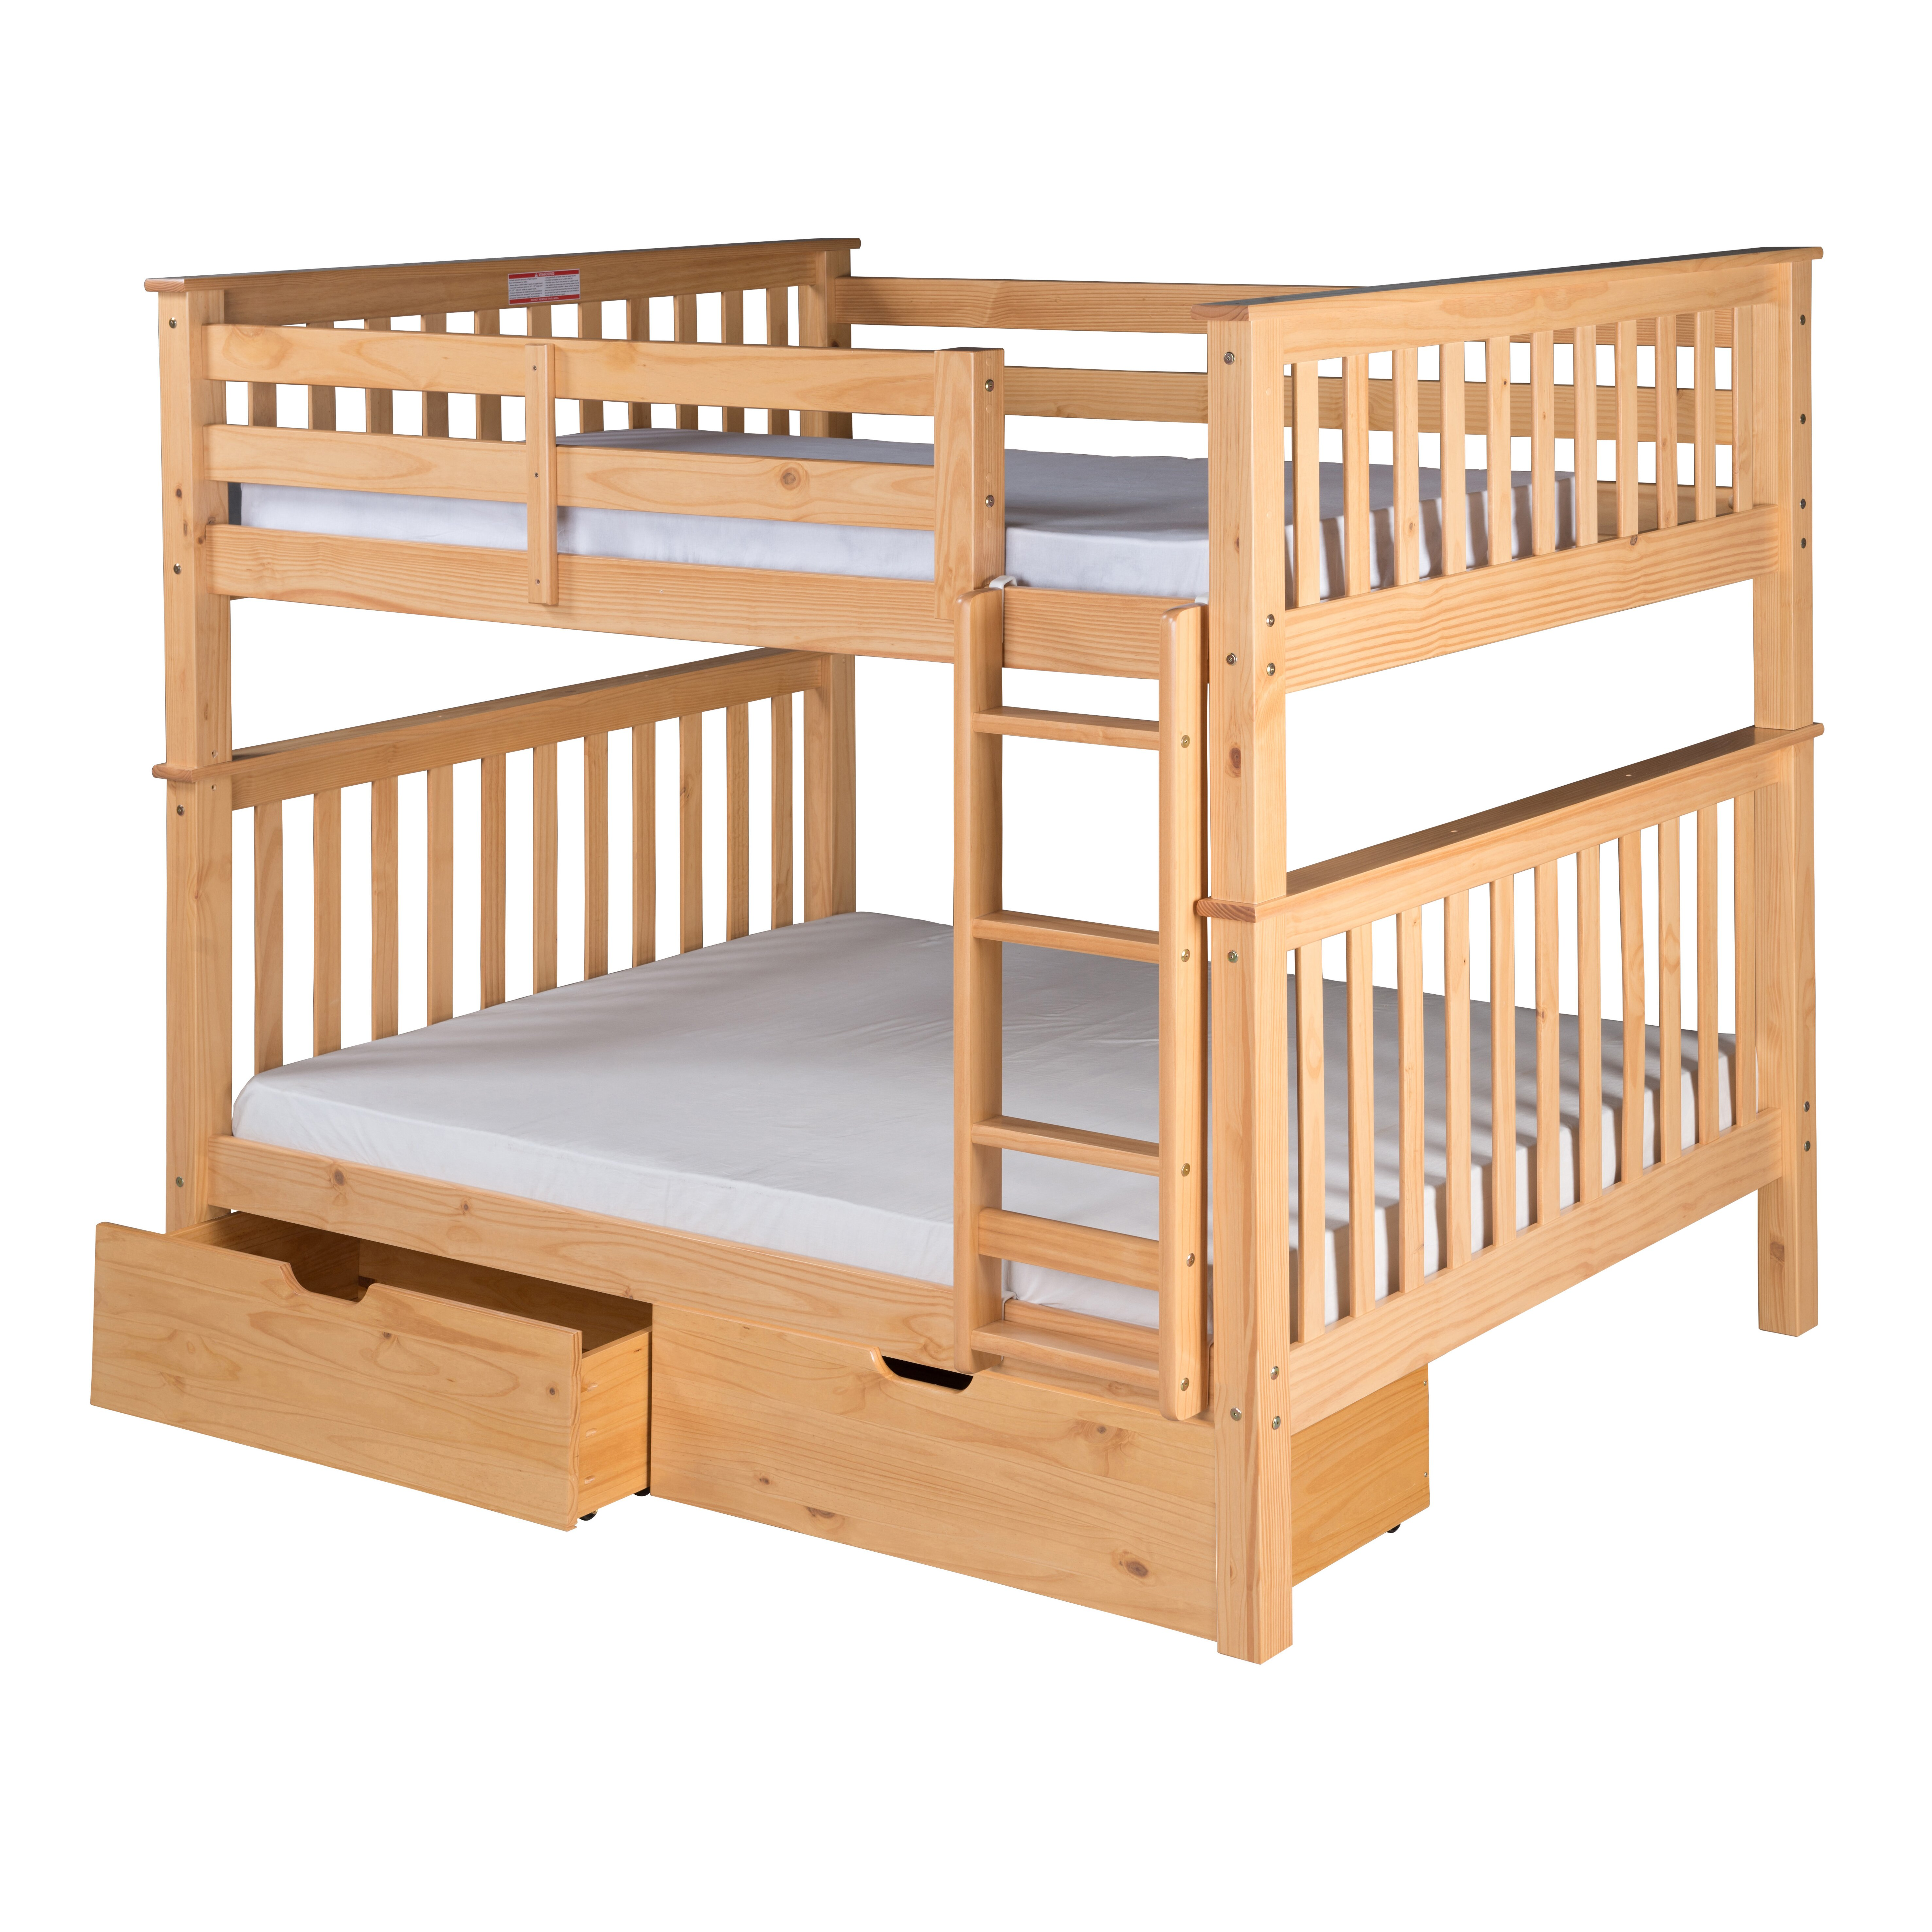 Camaflexi santa fe mission bunk bed with storage reviews wayfair - Kids bed with drawers underneath ...